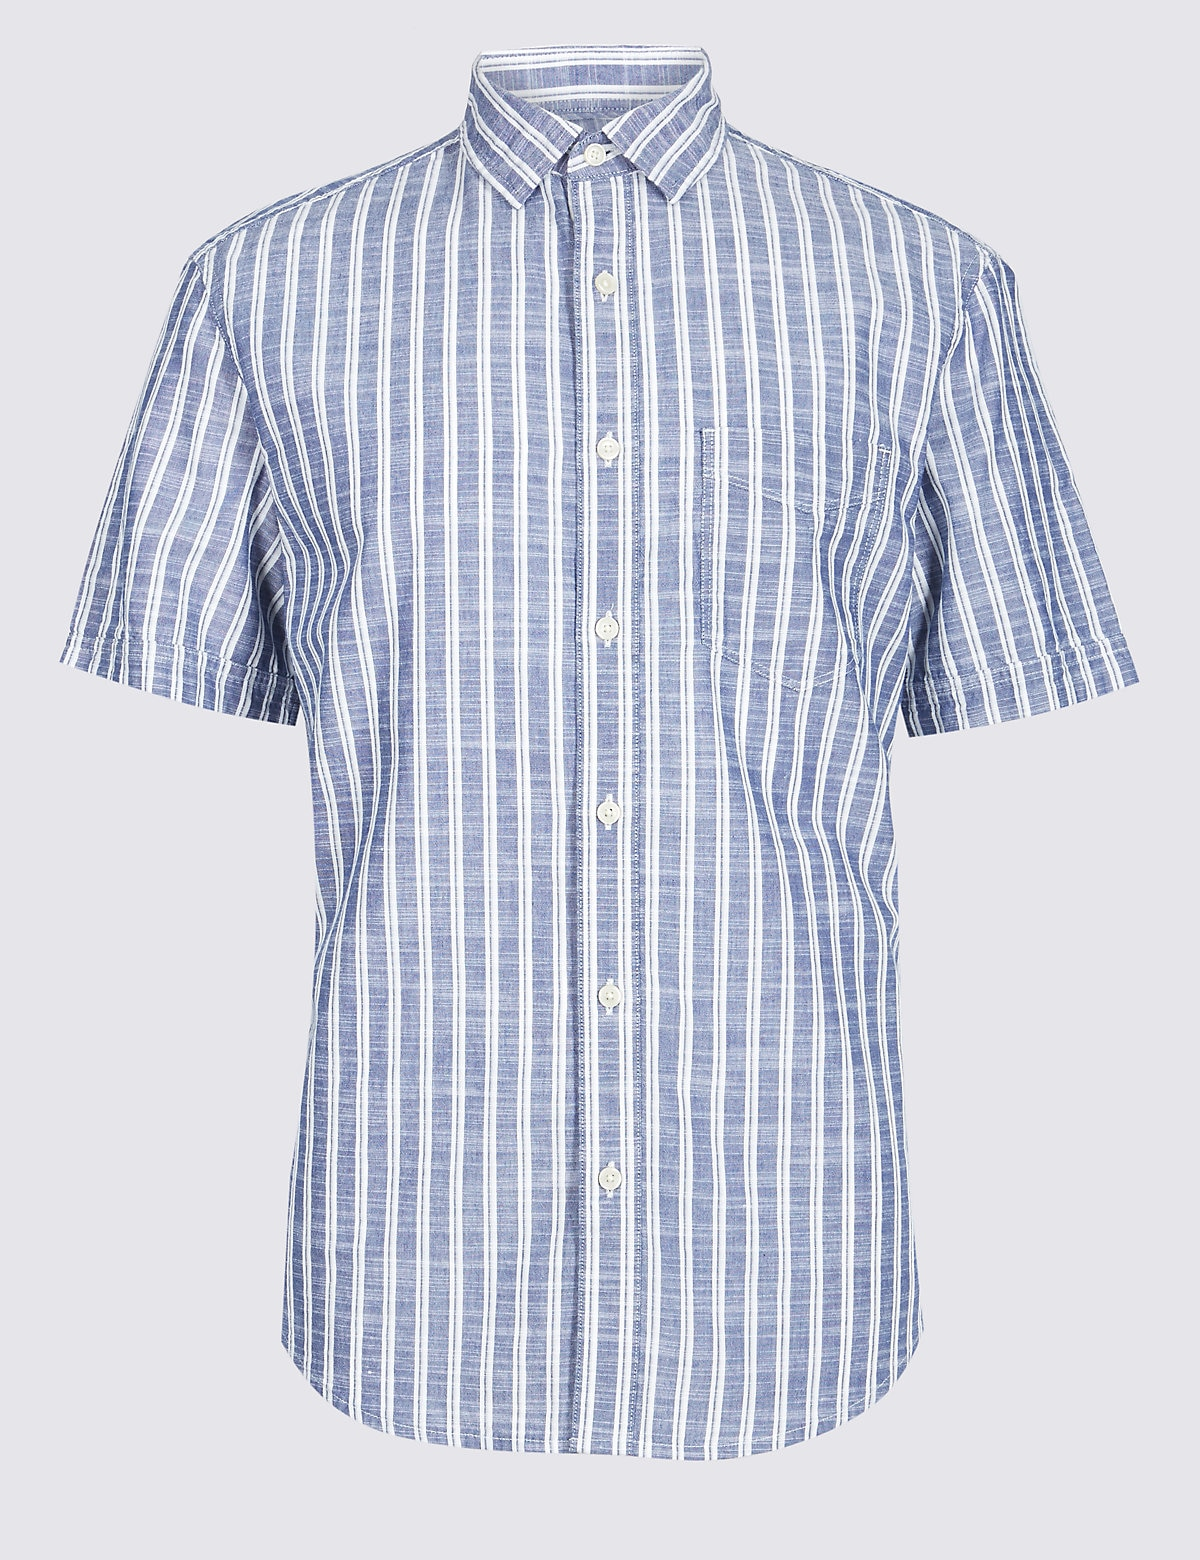 Marks & Spencer Blue Mix Pure Cotton Striped Shirt with Pocket